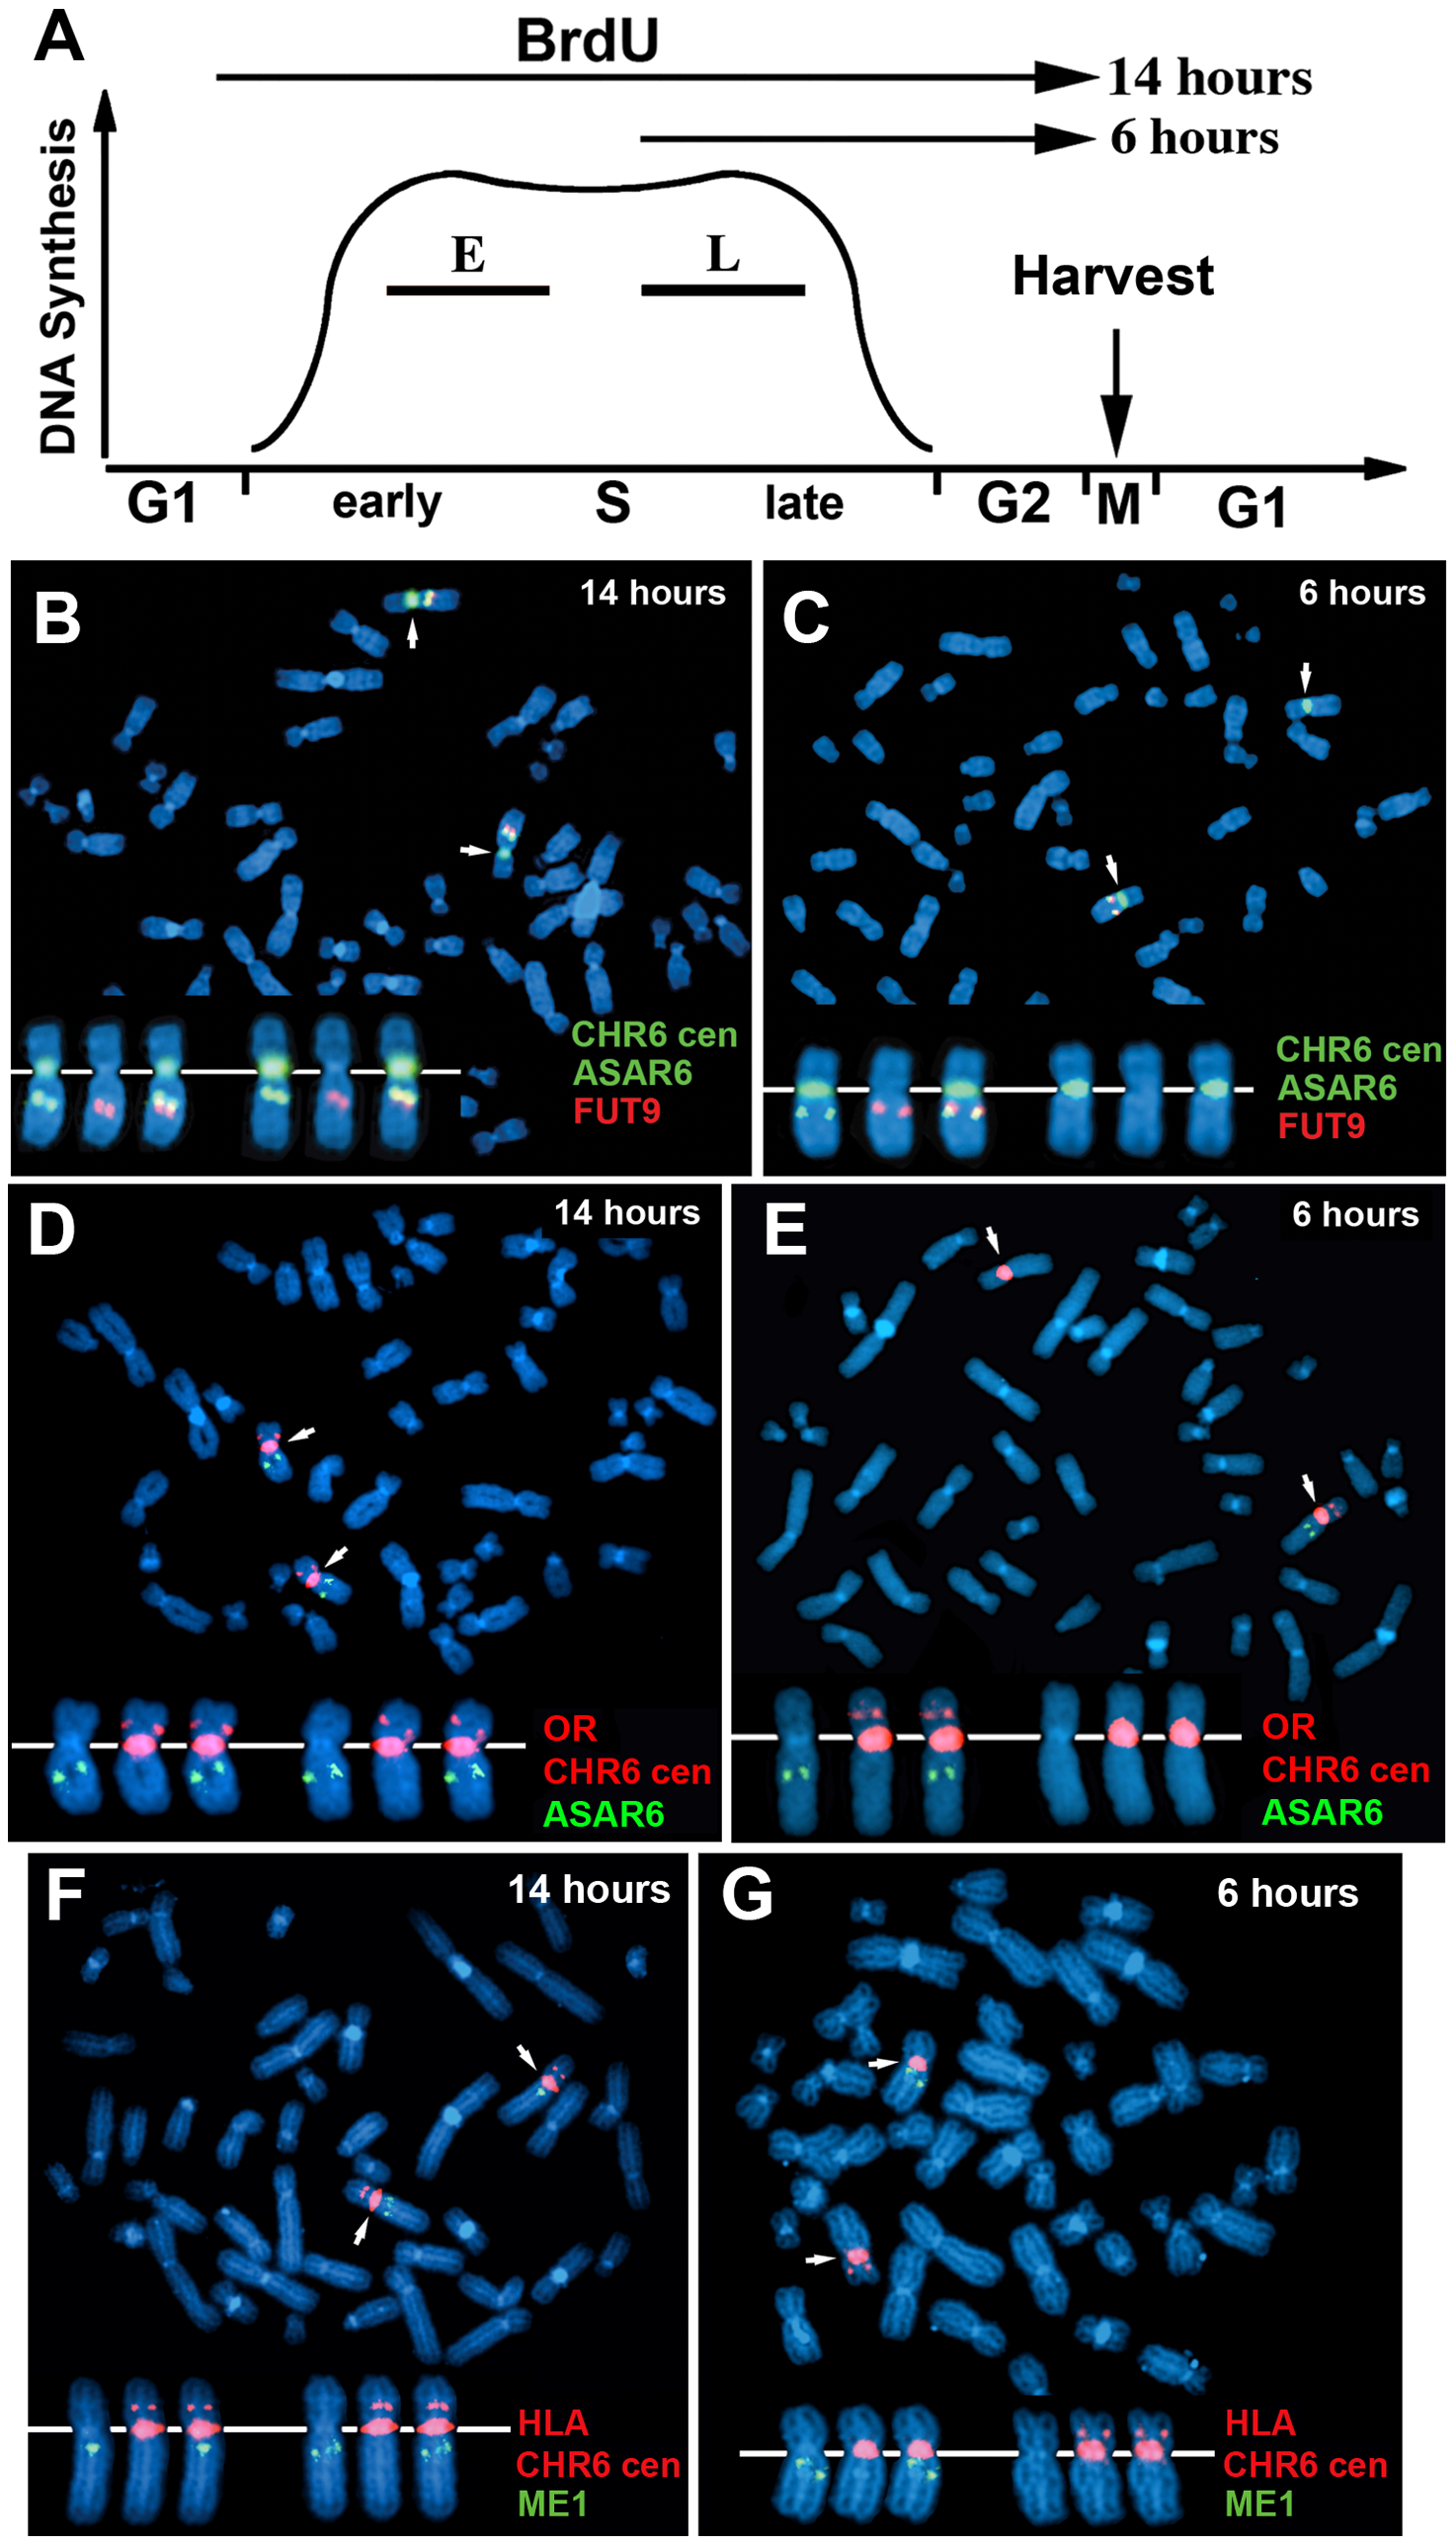 Coordinated asynchronous replication timing on chromosome 6.